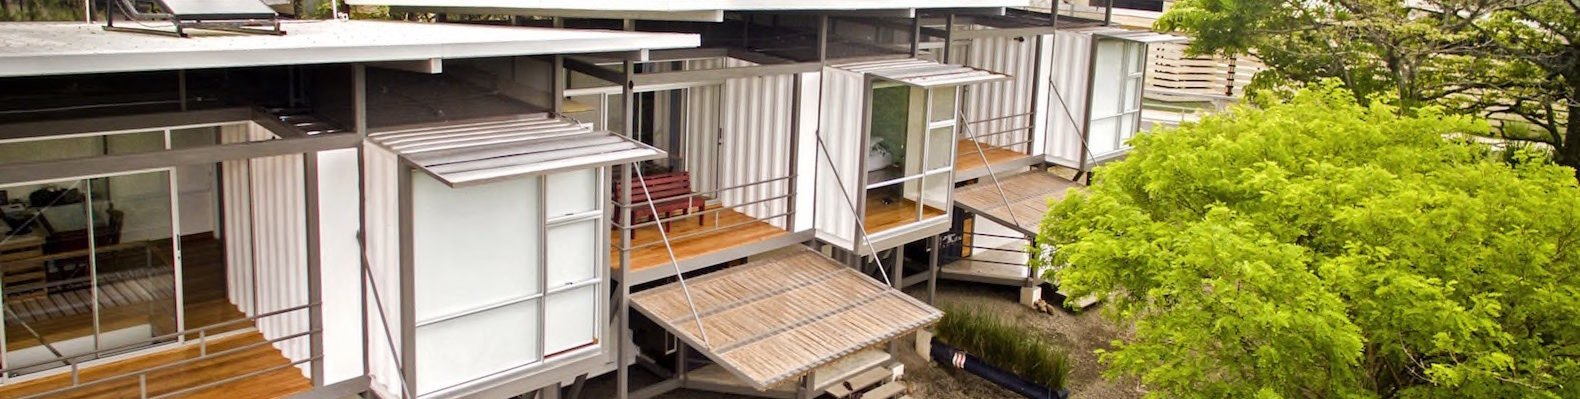 Franceschi Container Houses by DAO and Re Arquitectura, Franceschi Container Houses Costa Rica, Franceschi Container Houses Santa Ana, repurposed shipping container housing, cargotecture in Costa Rica, cargotecture family home, cargotecture apartments,